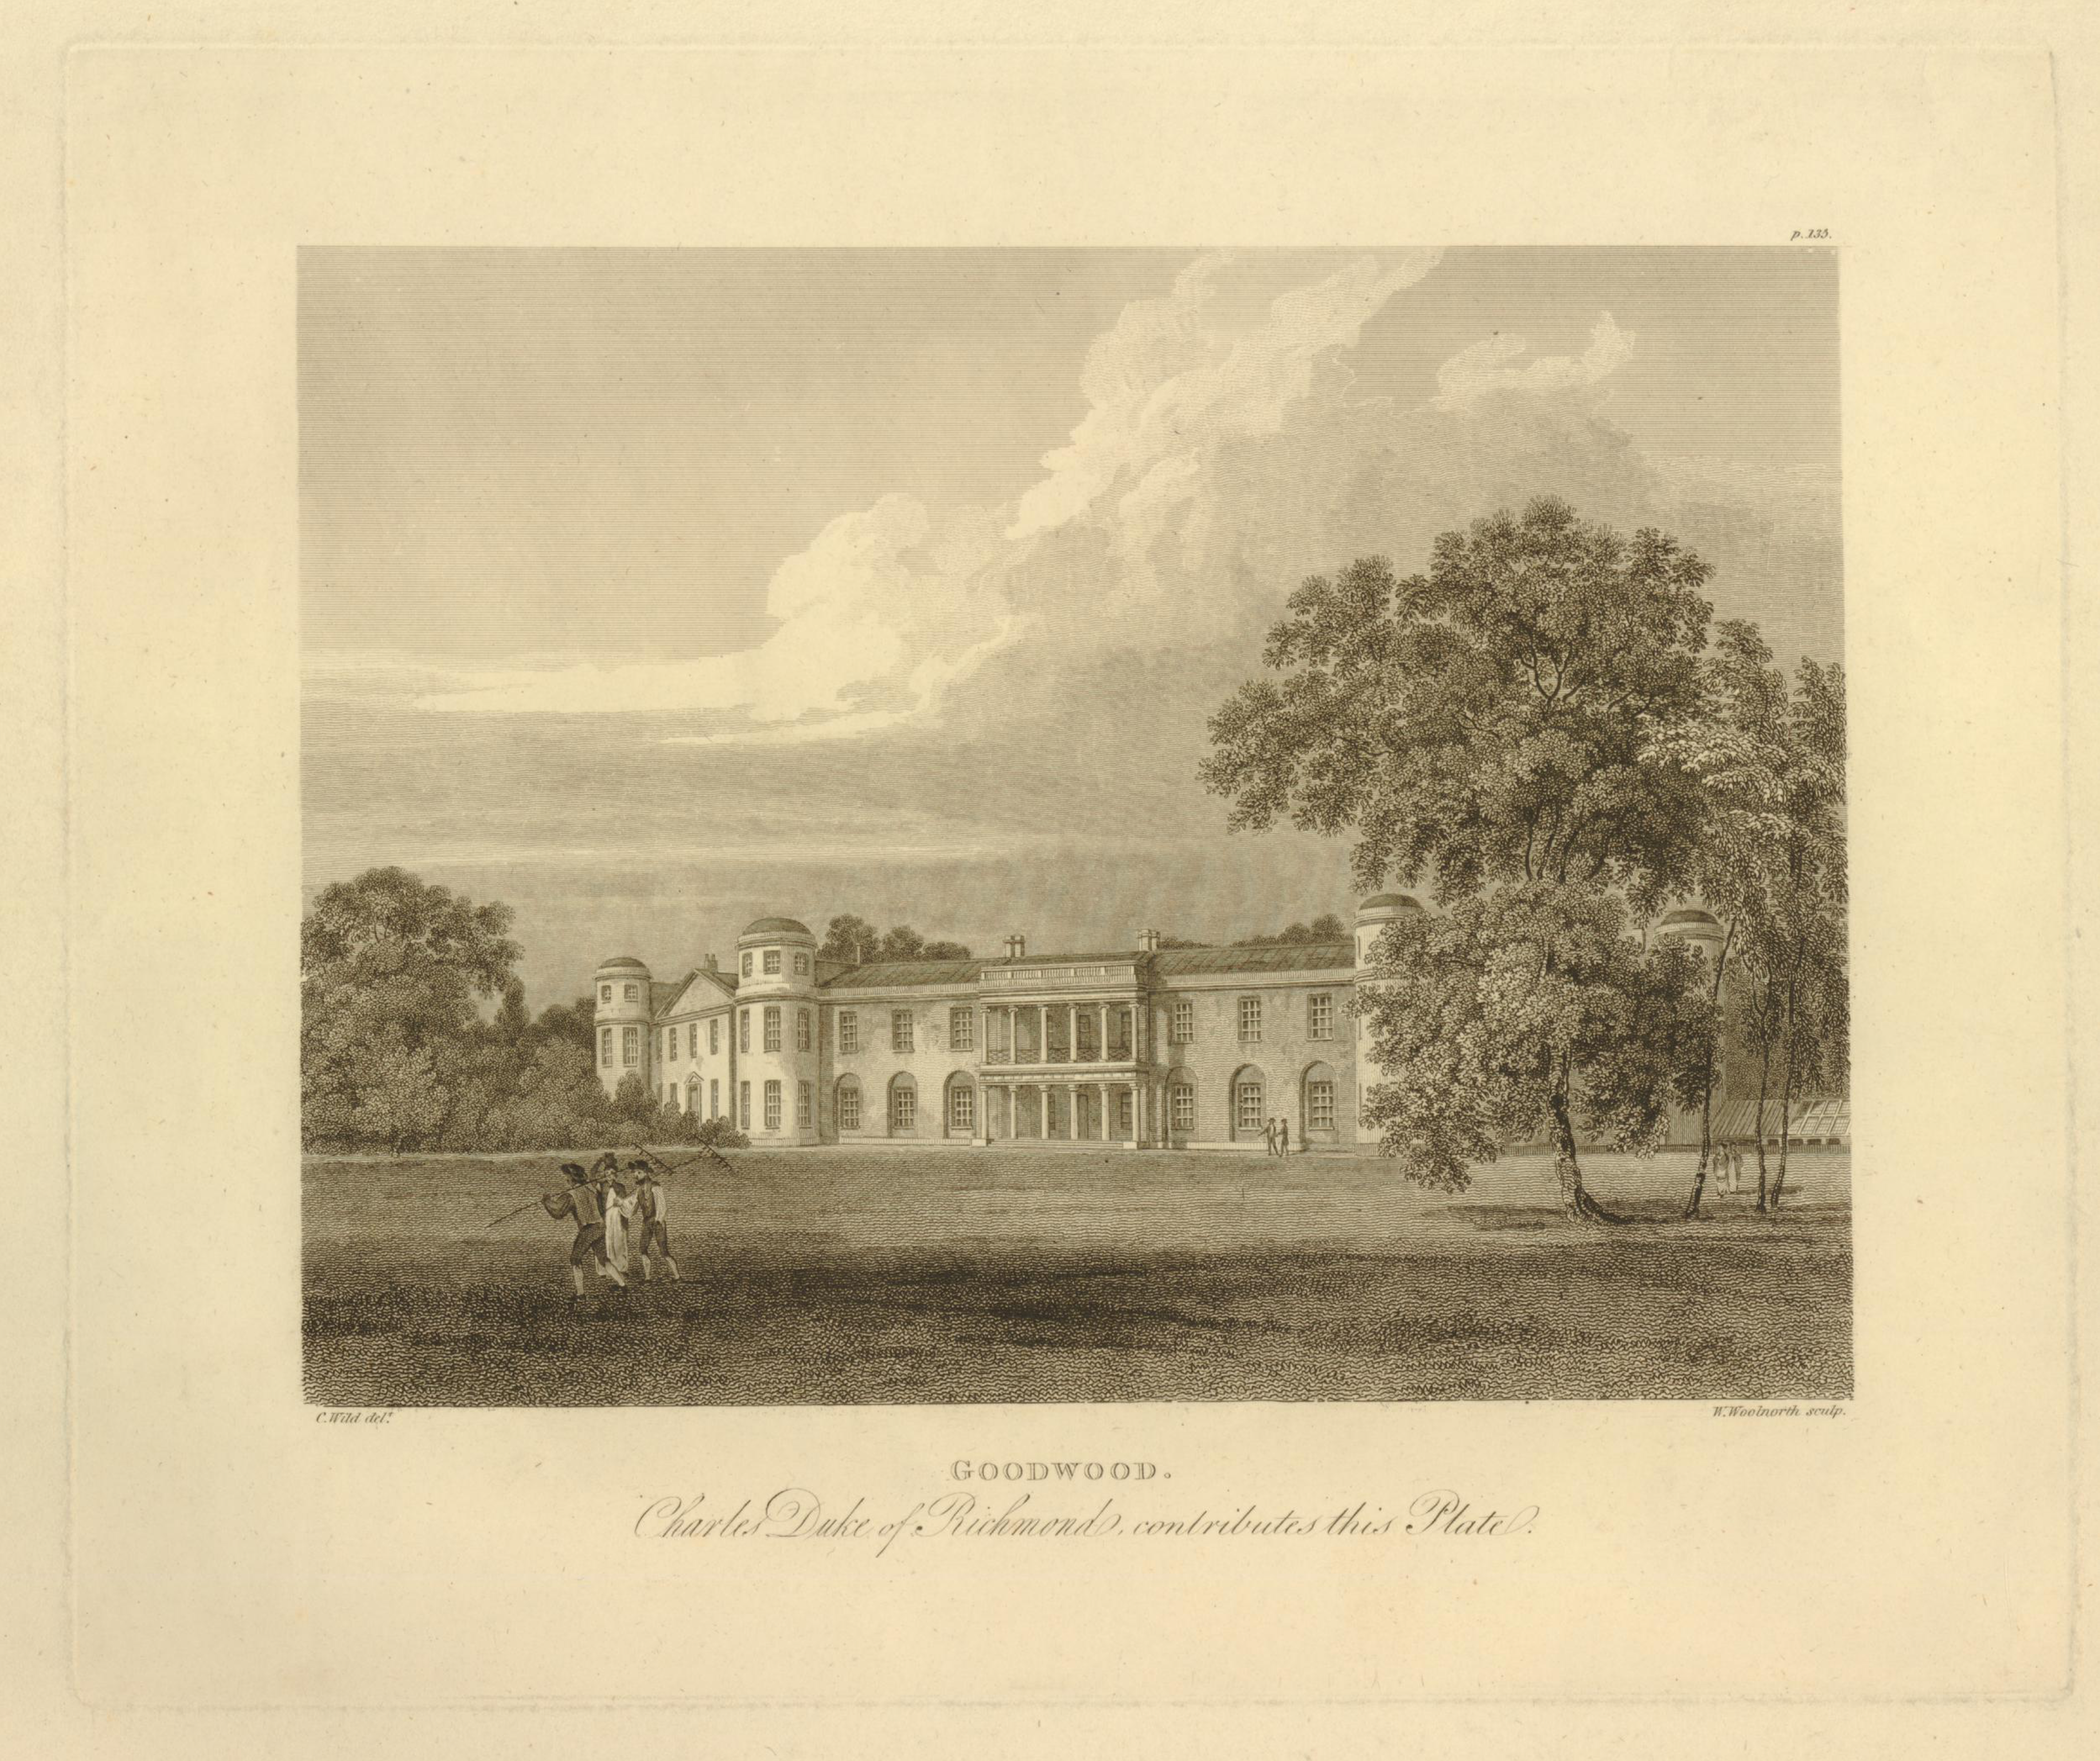 Goodwood House, Sussex, family seat of the Dukes of Richmond